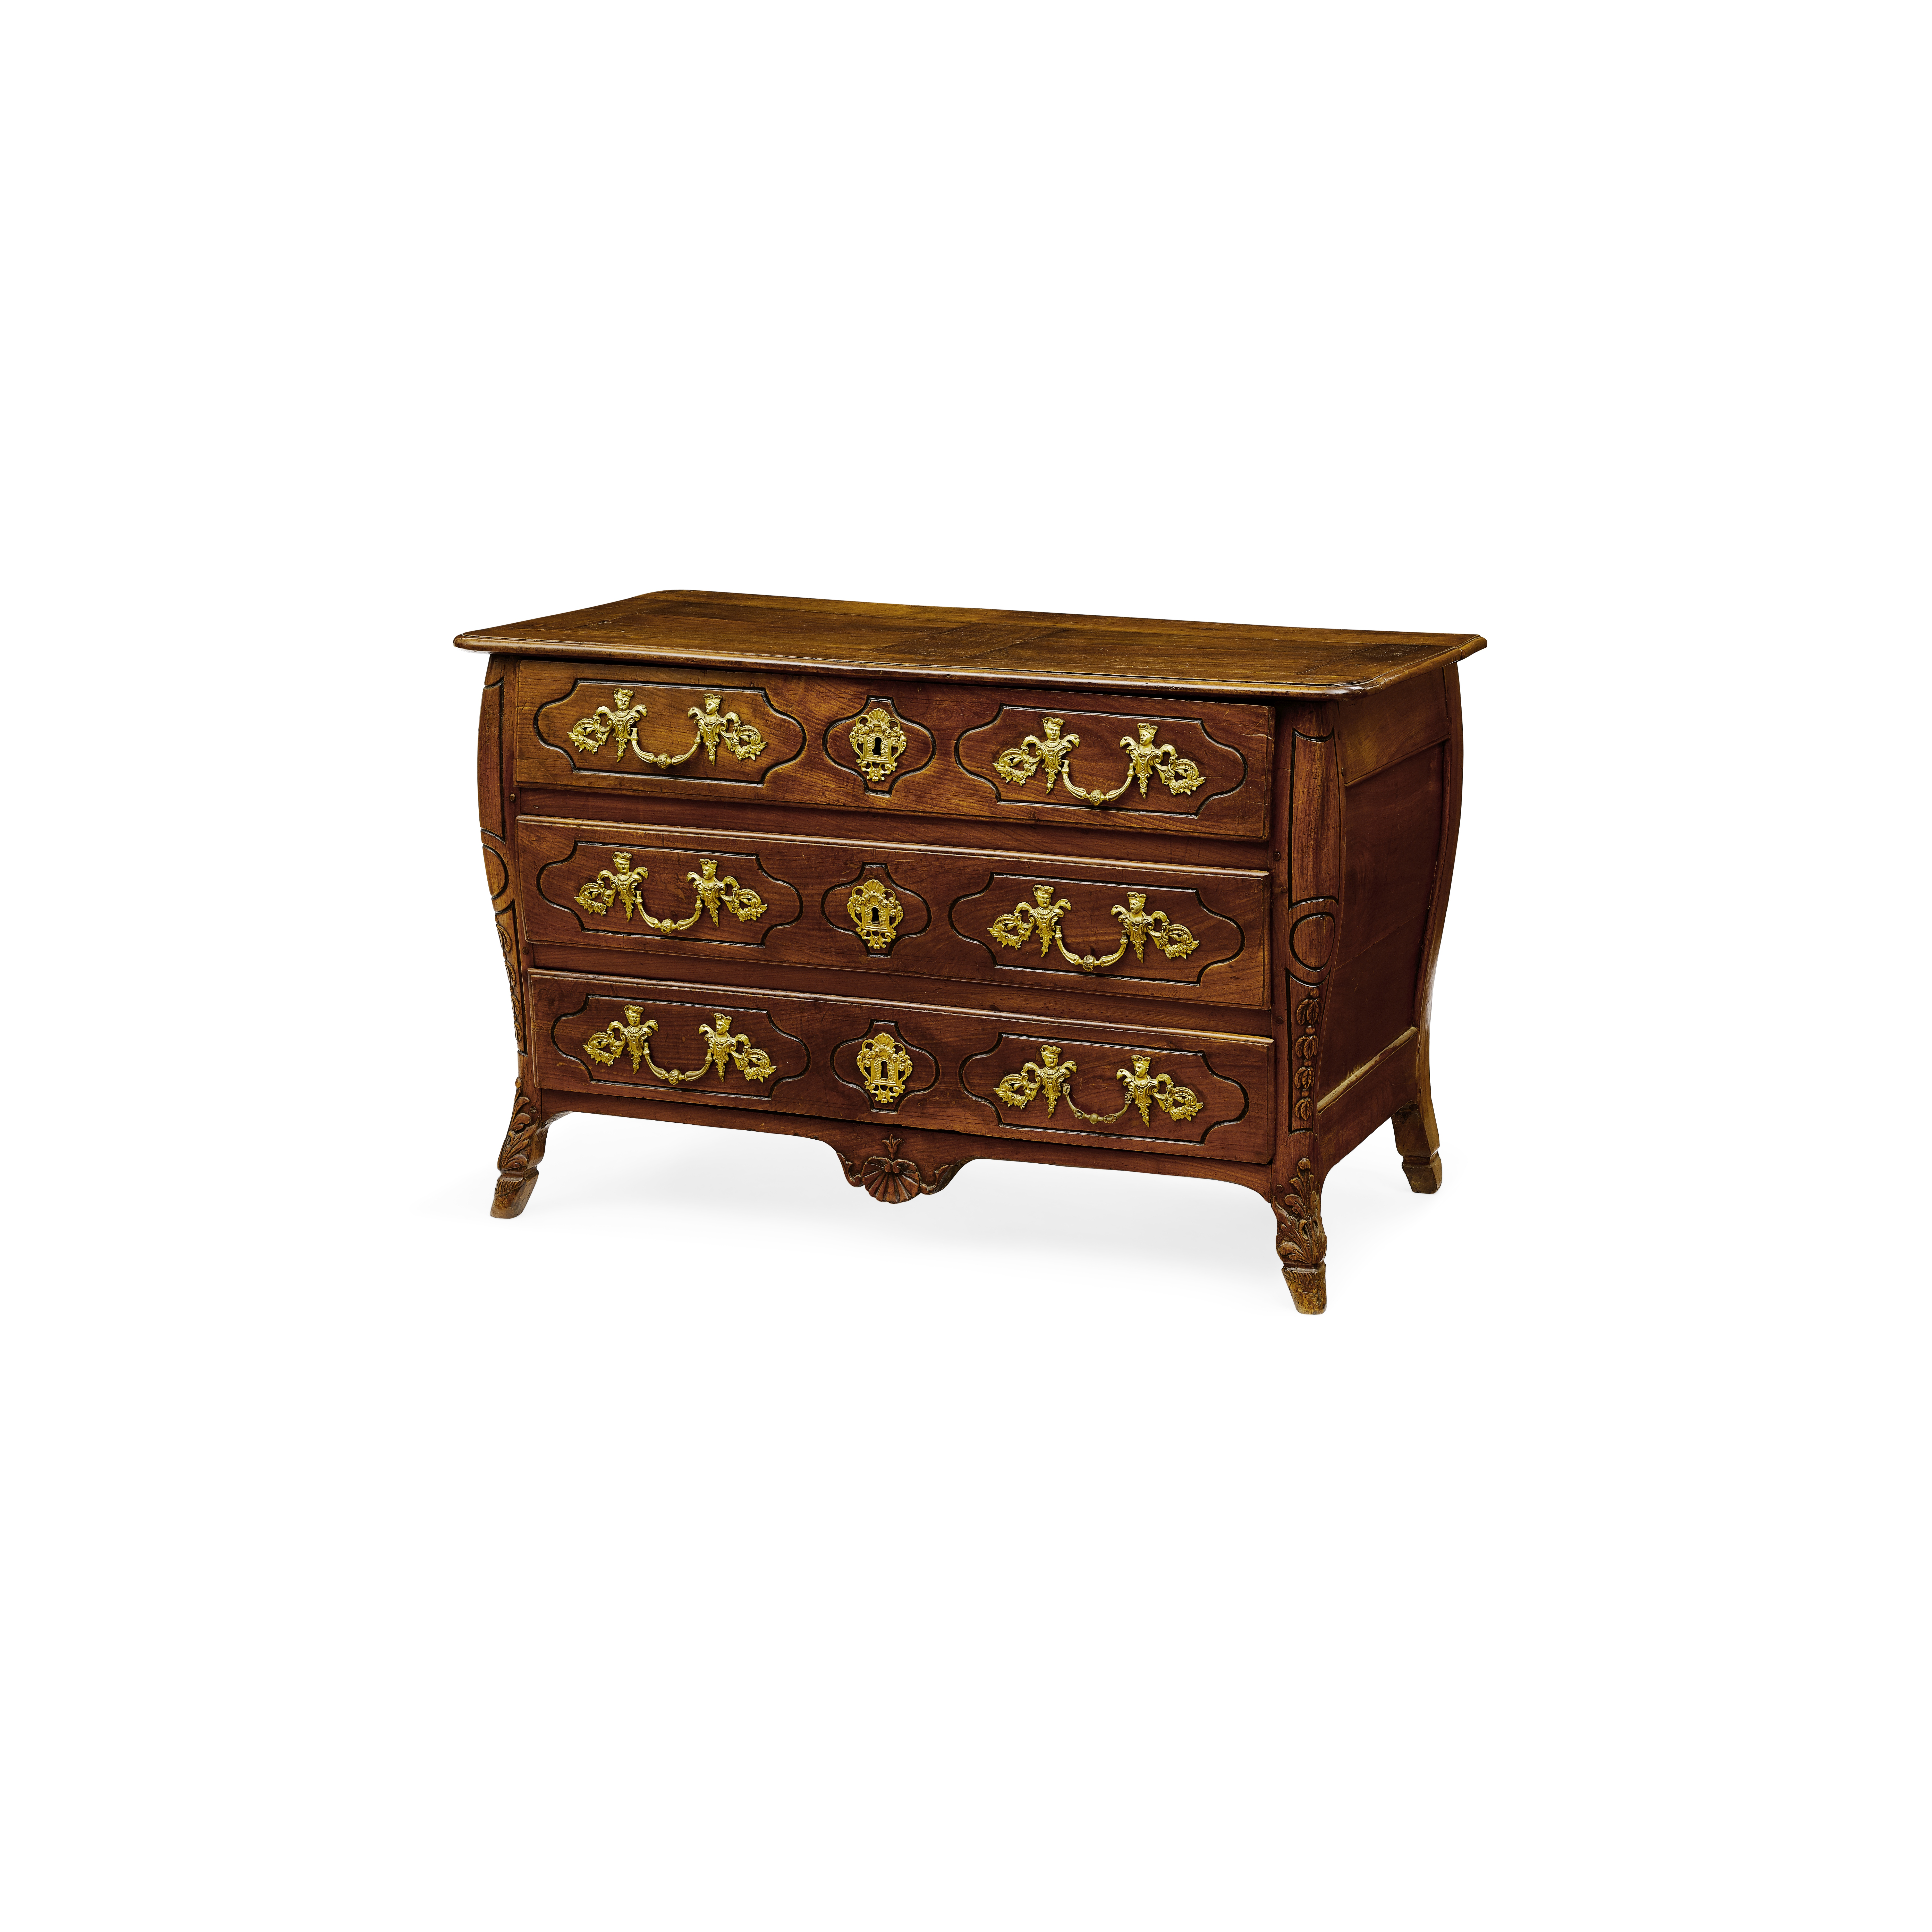 Lot 164 - A Louis XV Provincial Walnut Commode 18th century